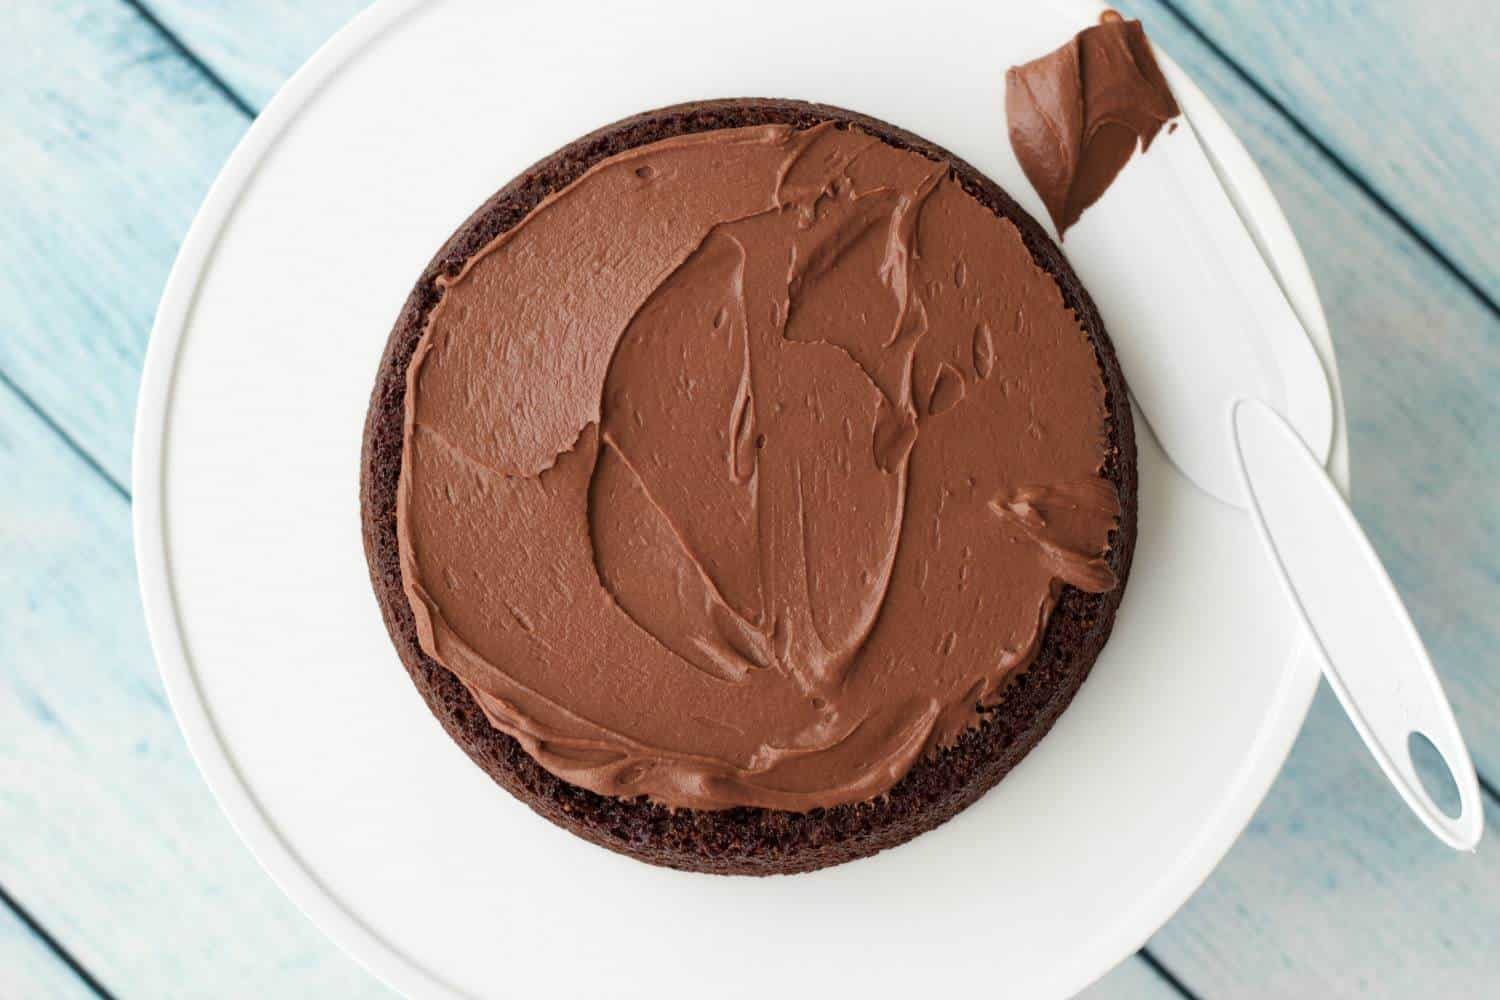 How To Make Chocolate Icing For The Cake